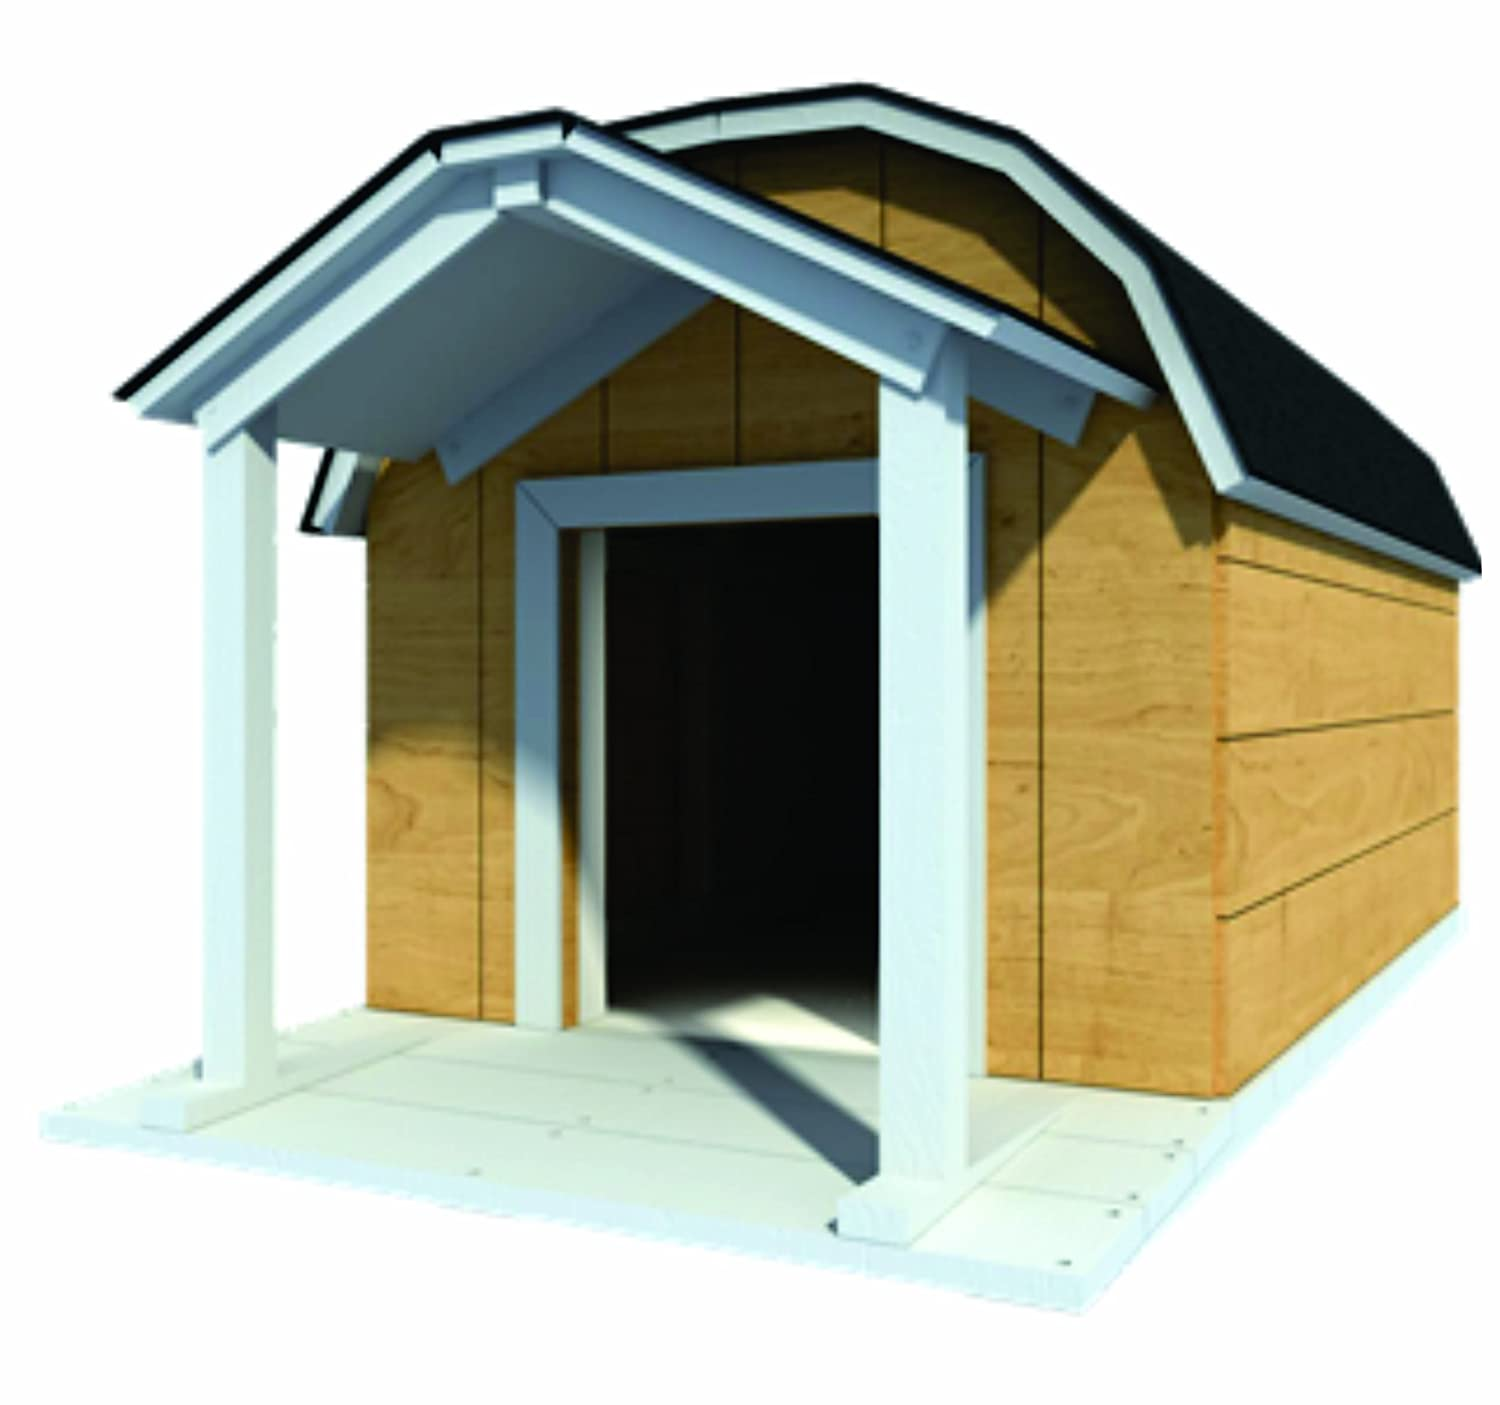 48 x 60 dog house plans gambrel roof pet size to 150 lbs large dog 08 woodworking project plans amazoncom